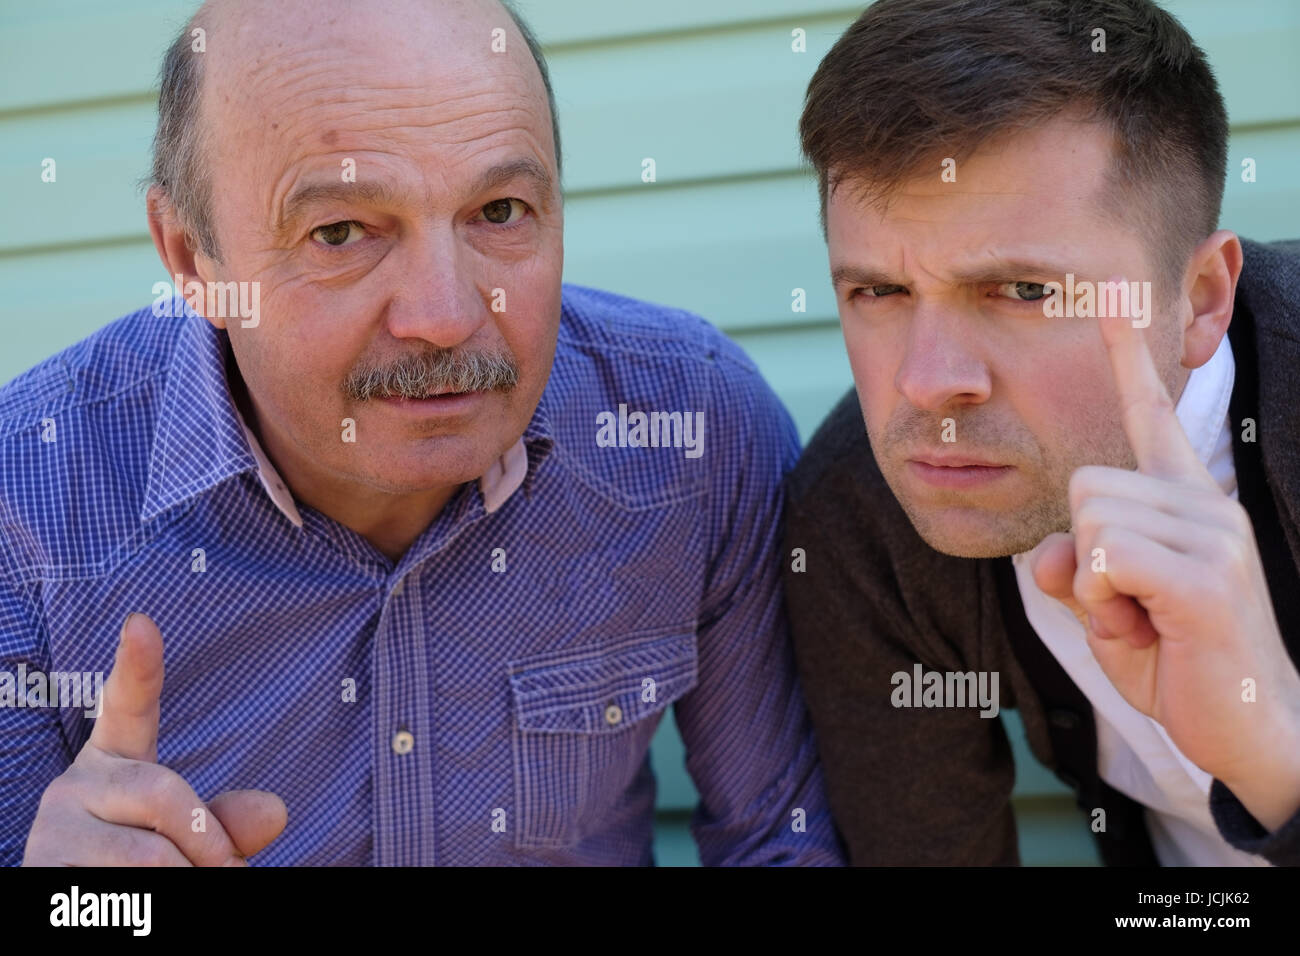 Satisfied men showing index finger up, giving advice or recommendation - Stock Image